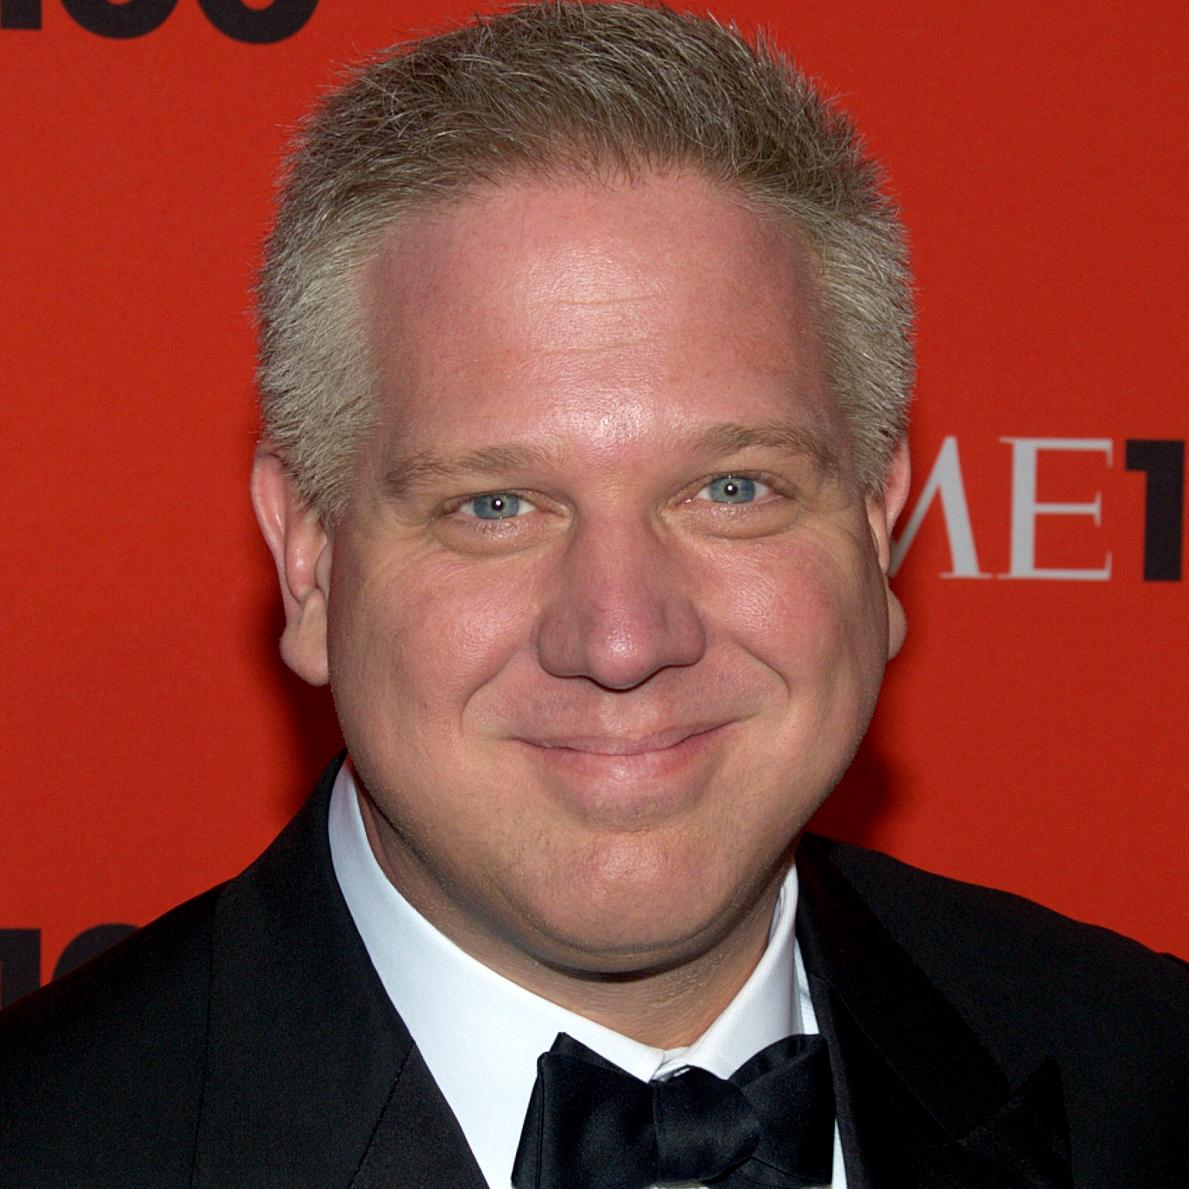 Glenn Beck Bio, Net Worth, Facts